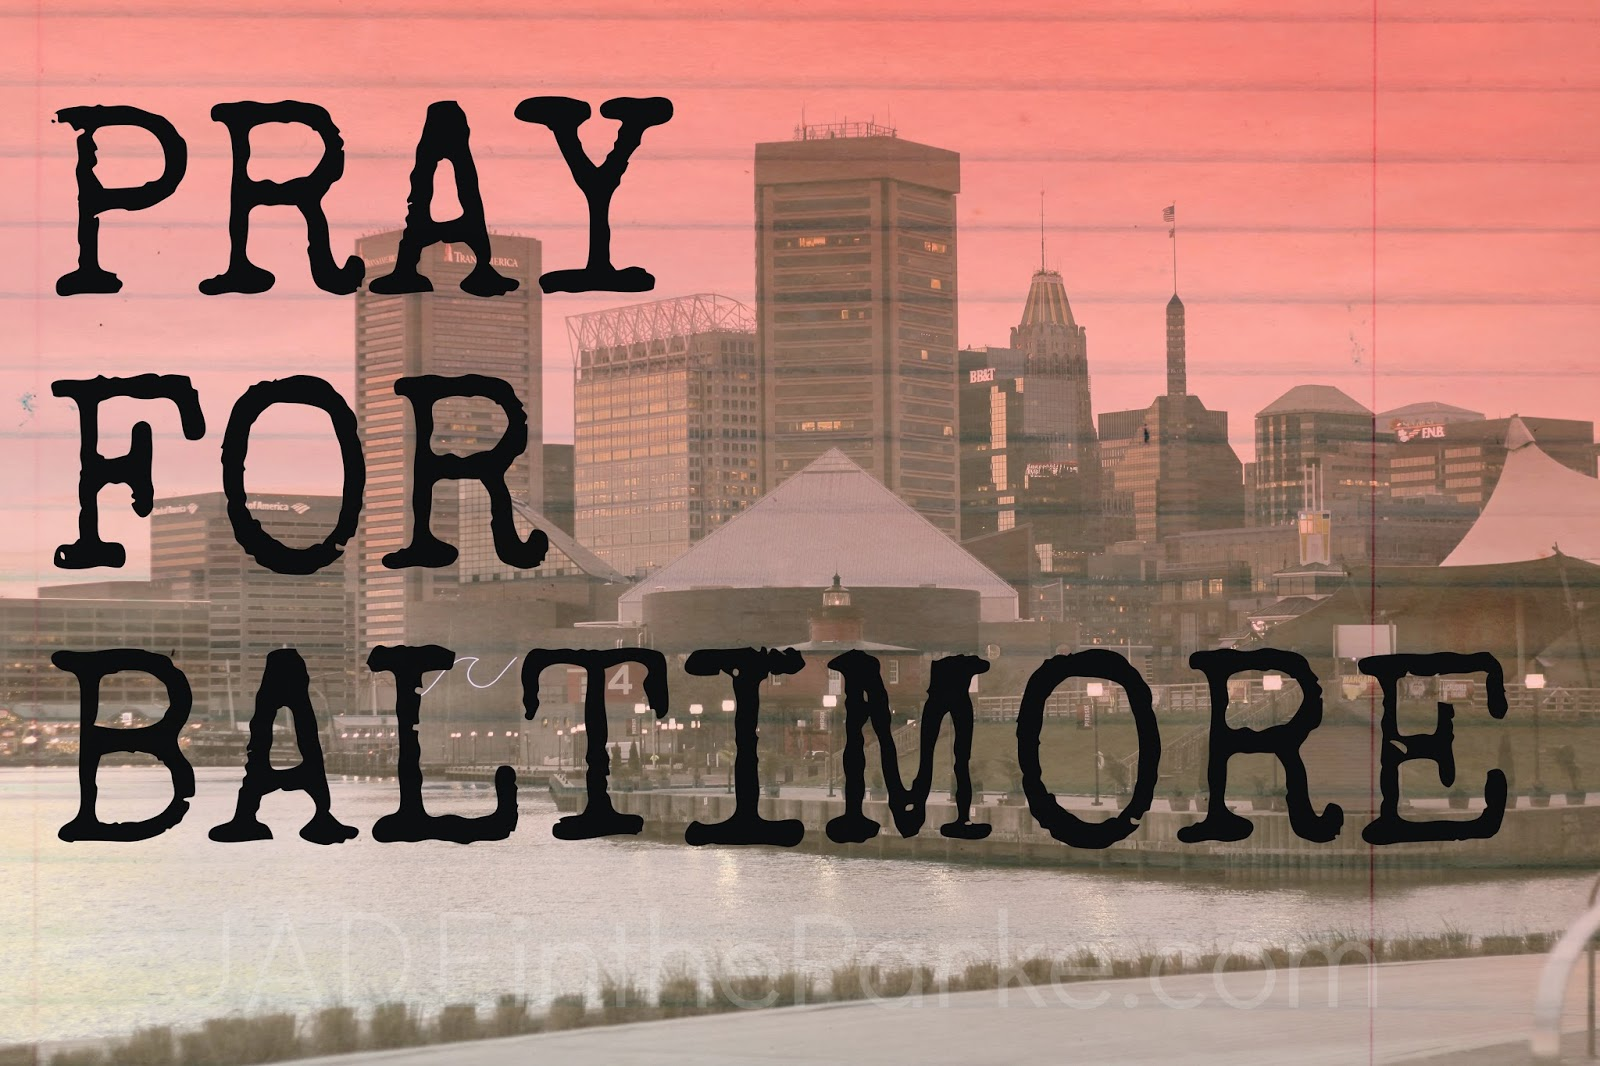 baltimore, baltimoreriot2015, baltimore riots 2015, baltimore riots, riots, riot, charm city, Governor Hogan, National Guard, State of emergency, curfew, inner harbor, johns hopkins, physics, prayforbaltimore, pray for baltimore, freddie gray